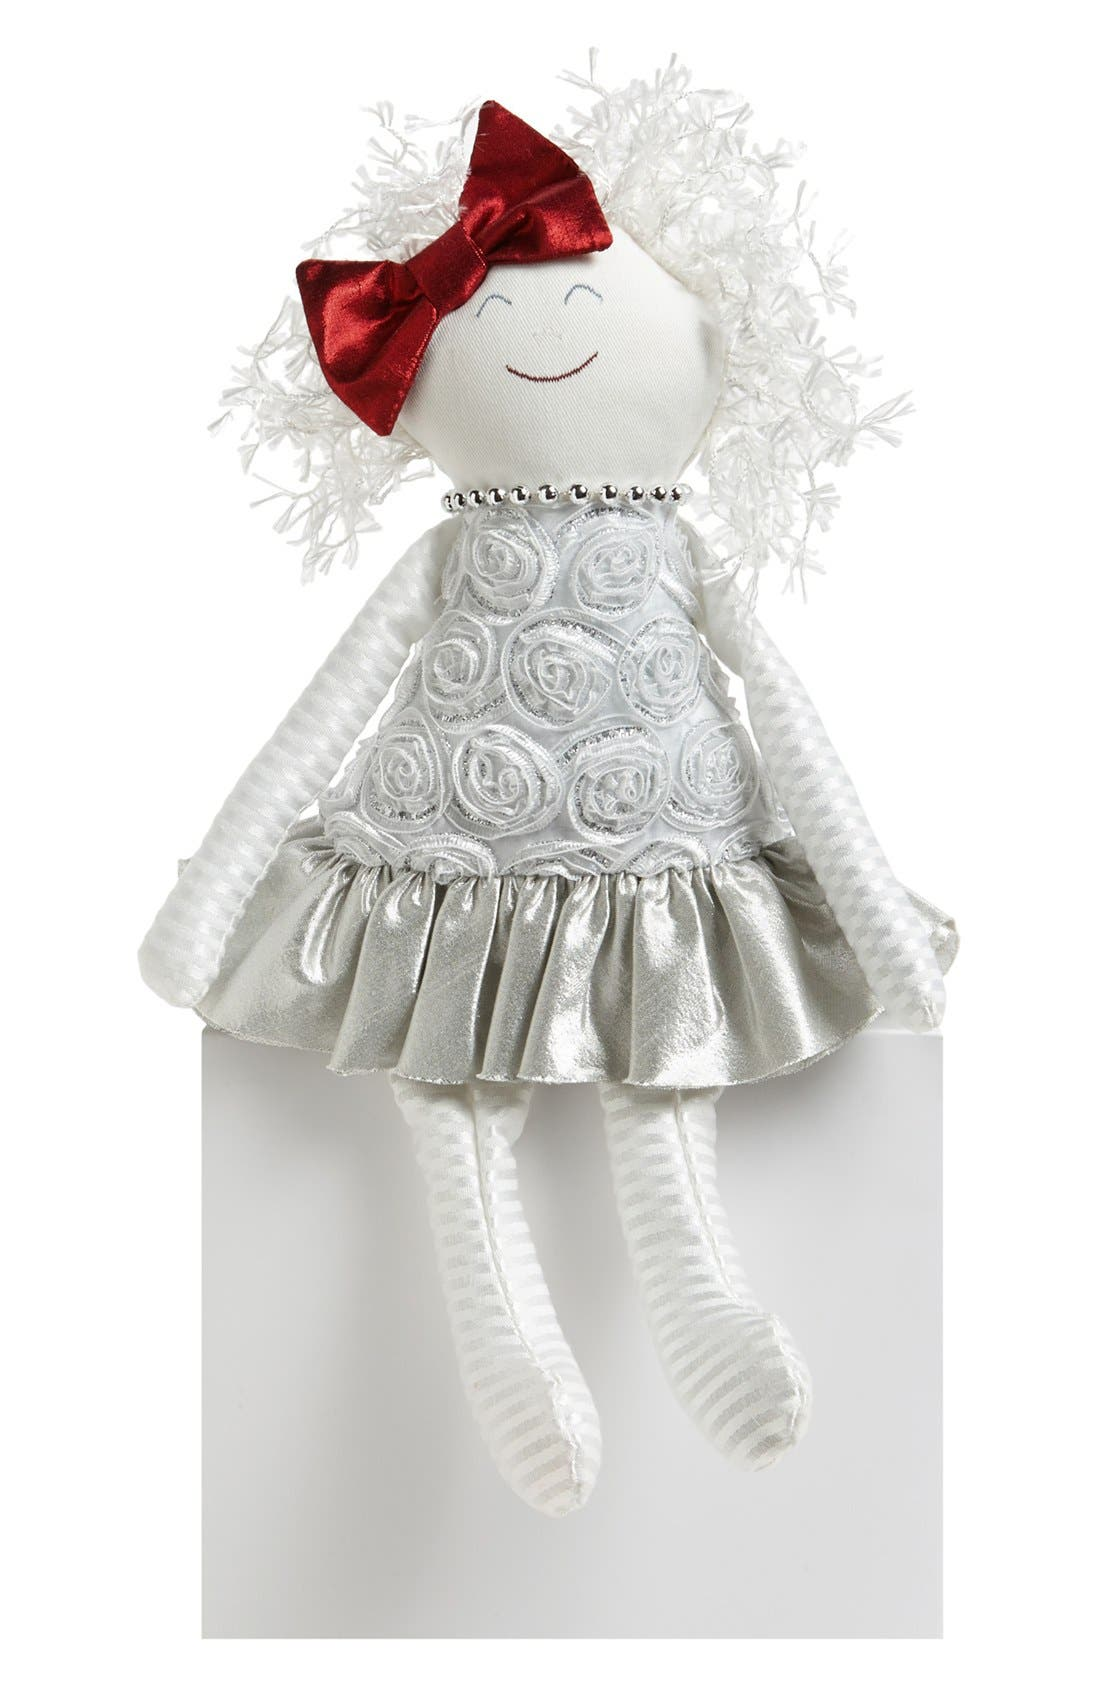 Alternate Image 1 Selected - Woof & Poof 'Party Girl' Doll